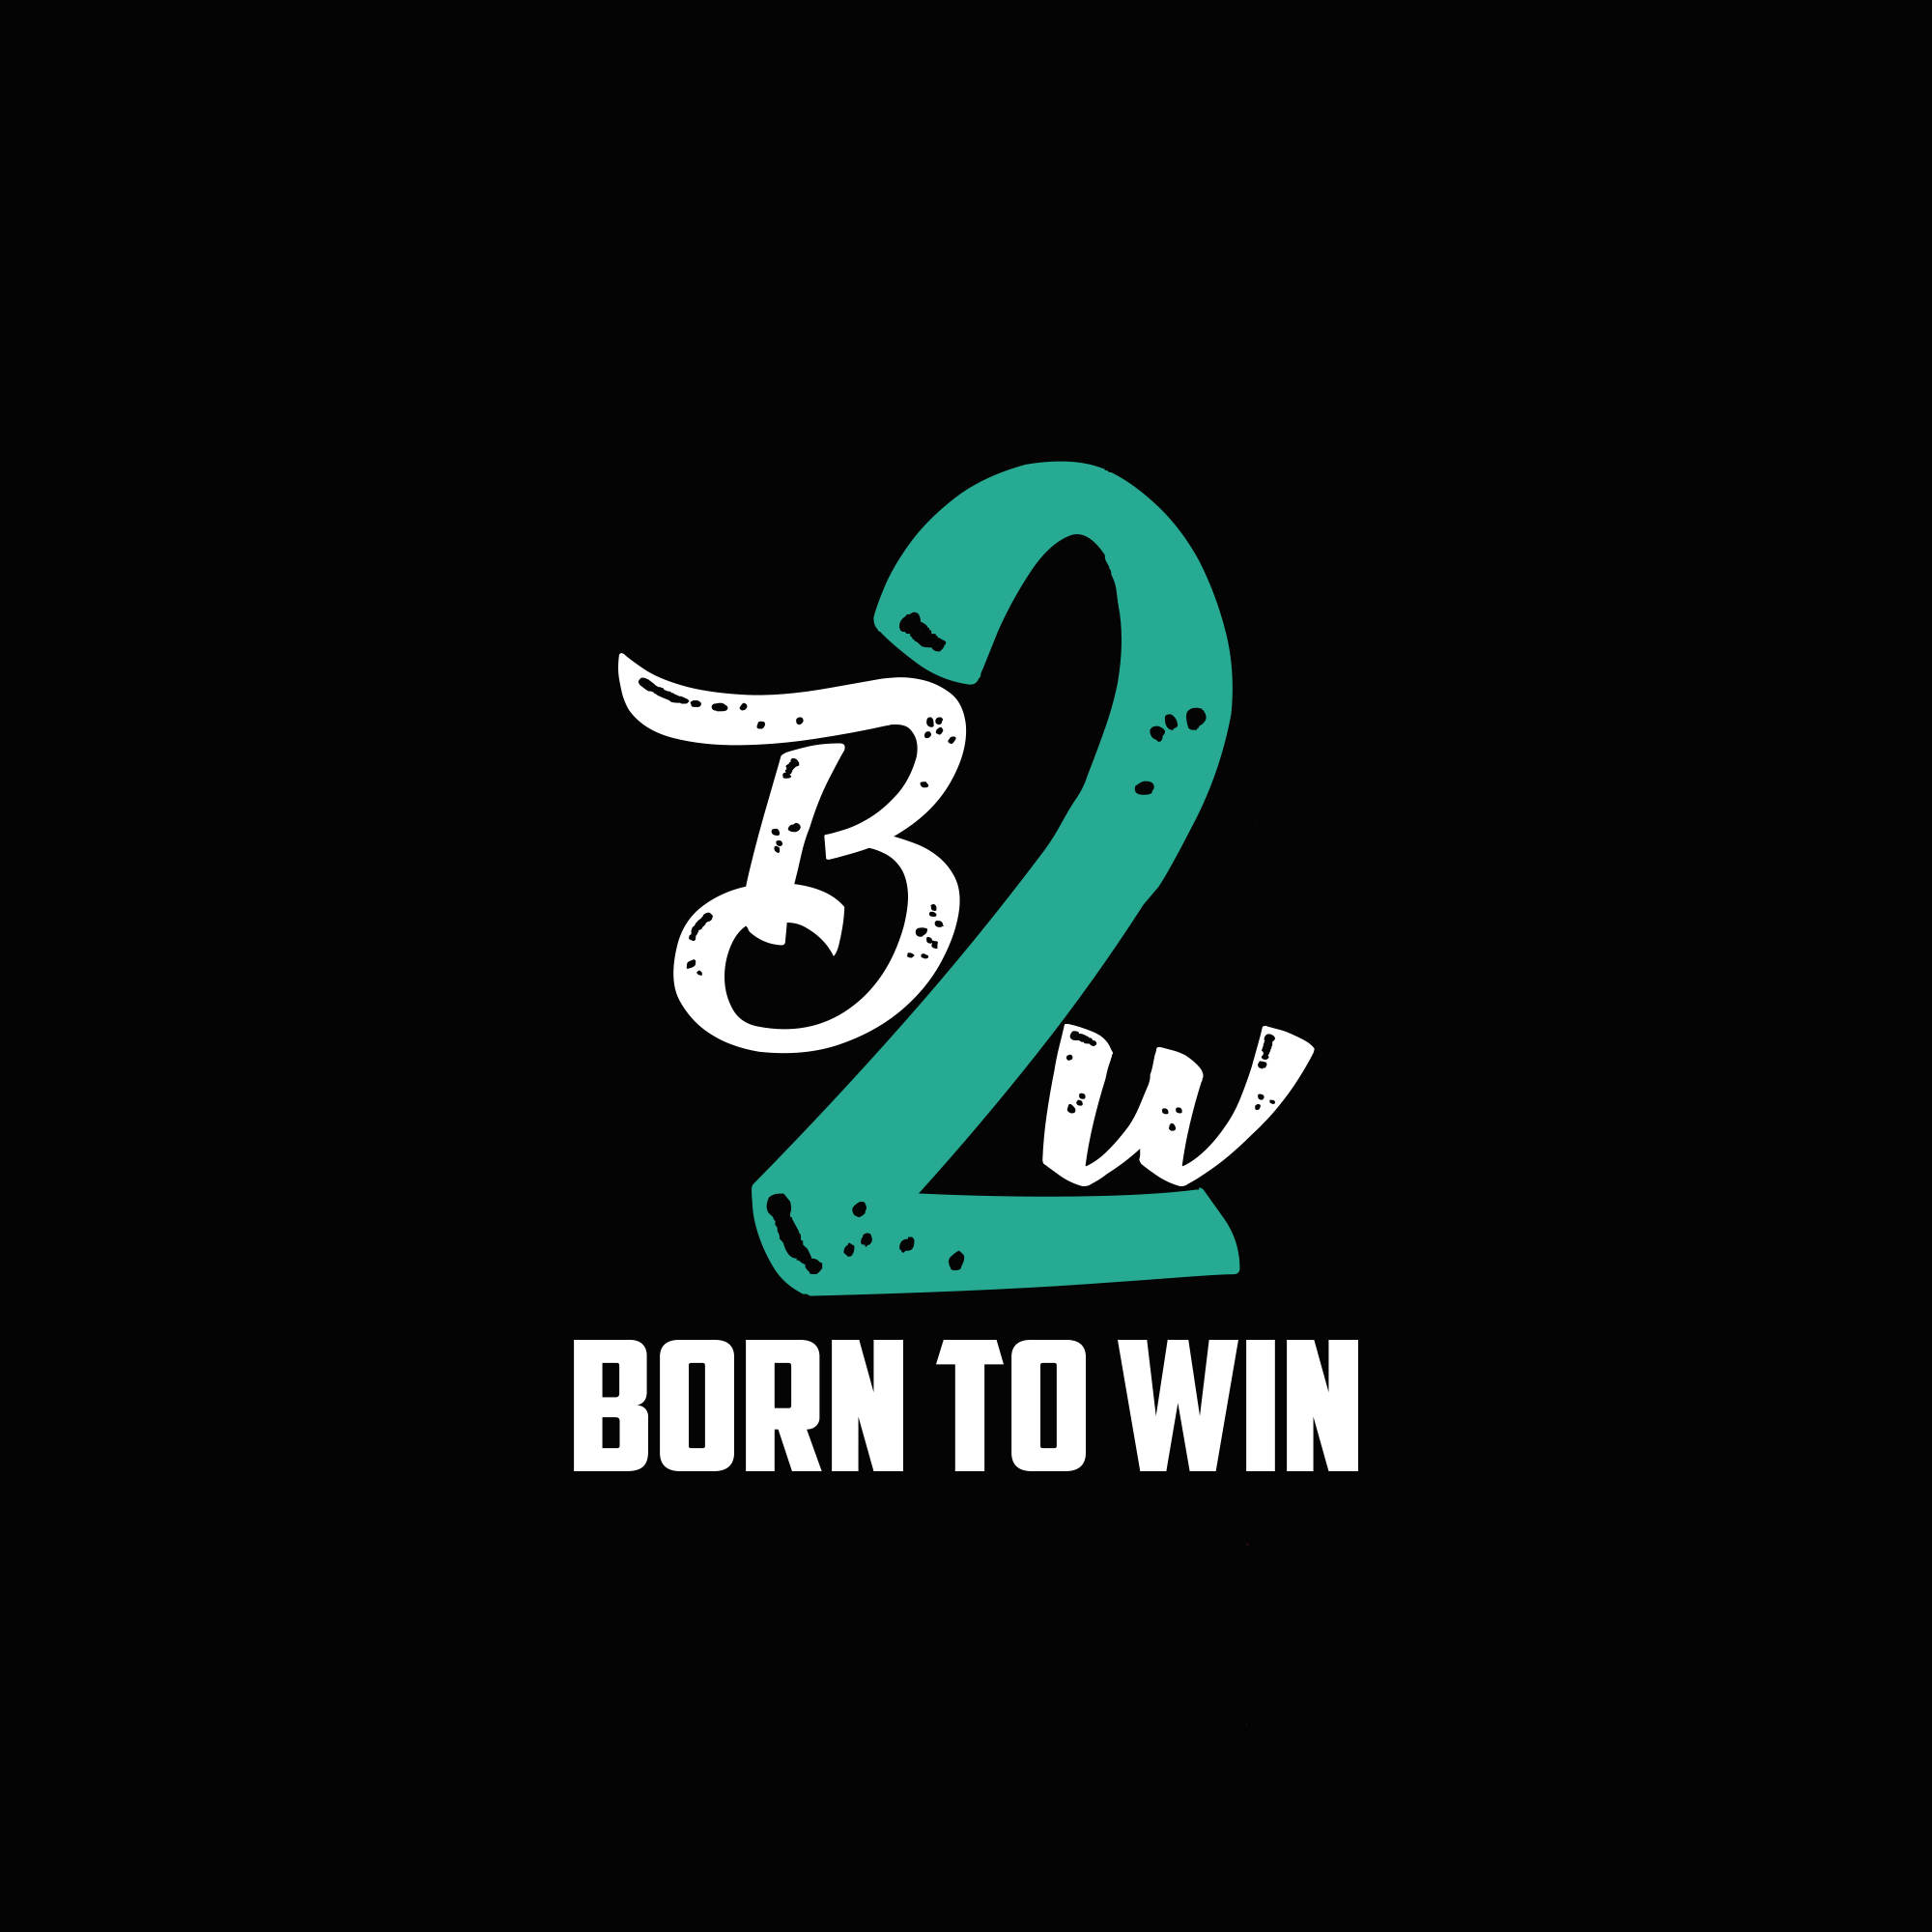 Born To Win – A Social Enterprise which Strives to eradicate social challenges